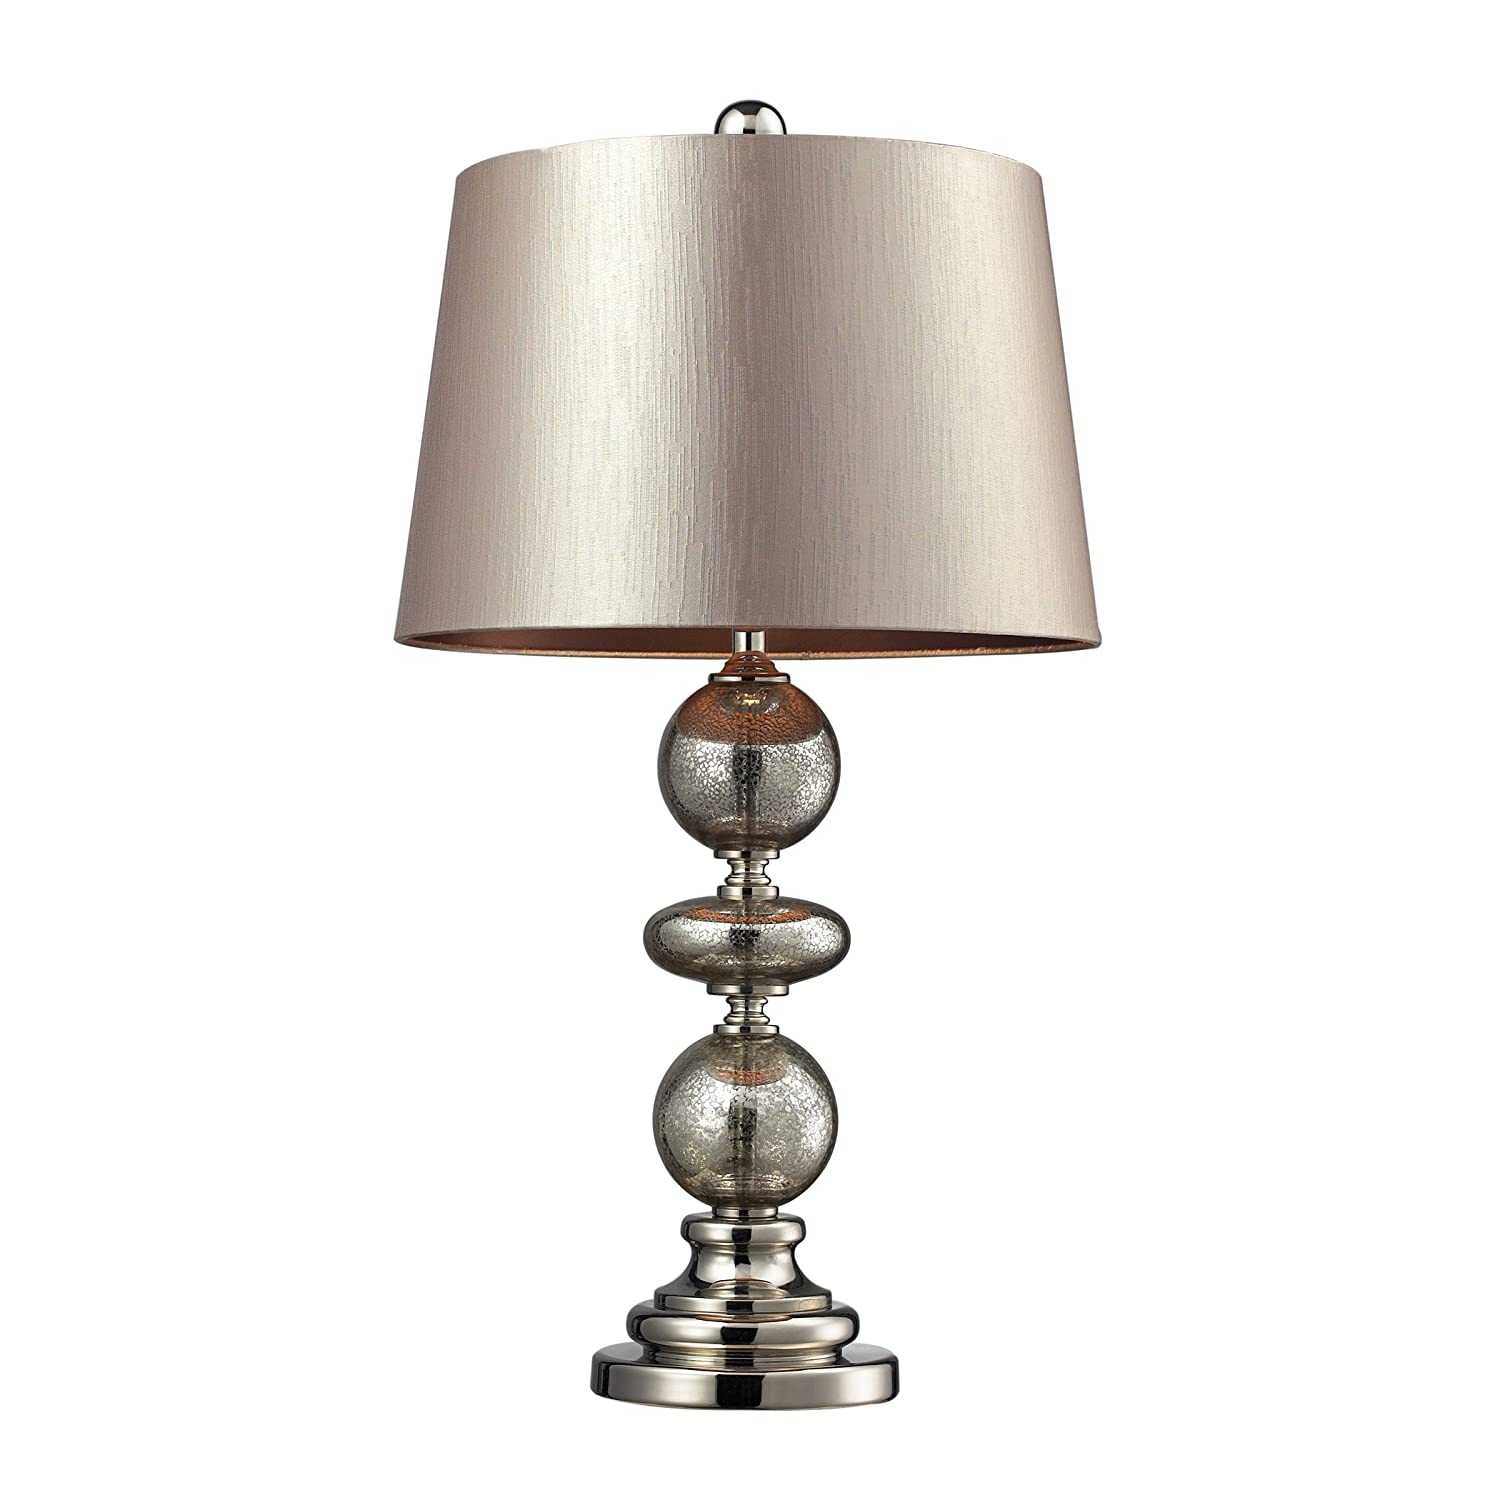 Dimond Lighting D2227 Hollis Table Lamp 29 X 15 X 29 Antique